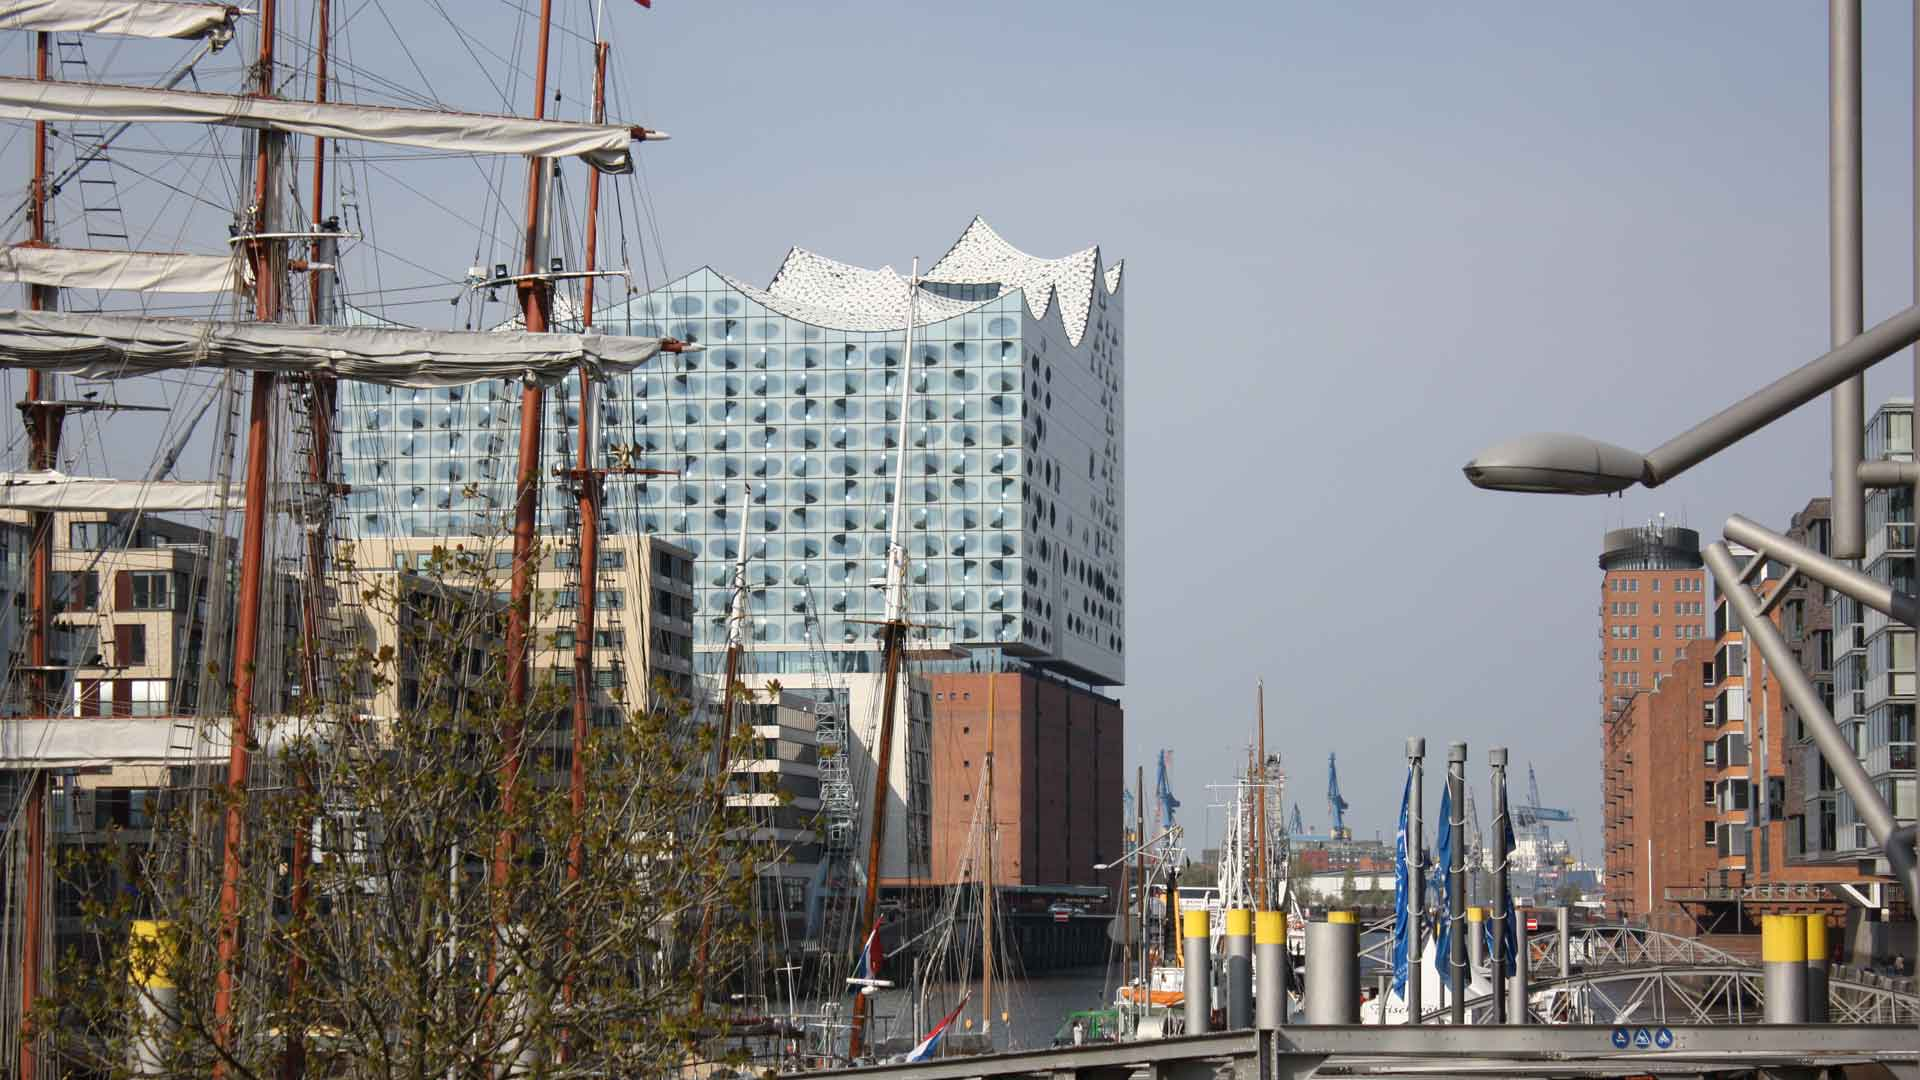 De Elbphilharmonie is erg fotogeniek.